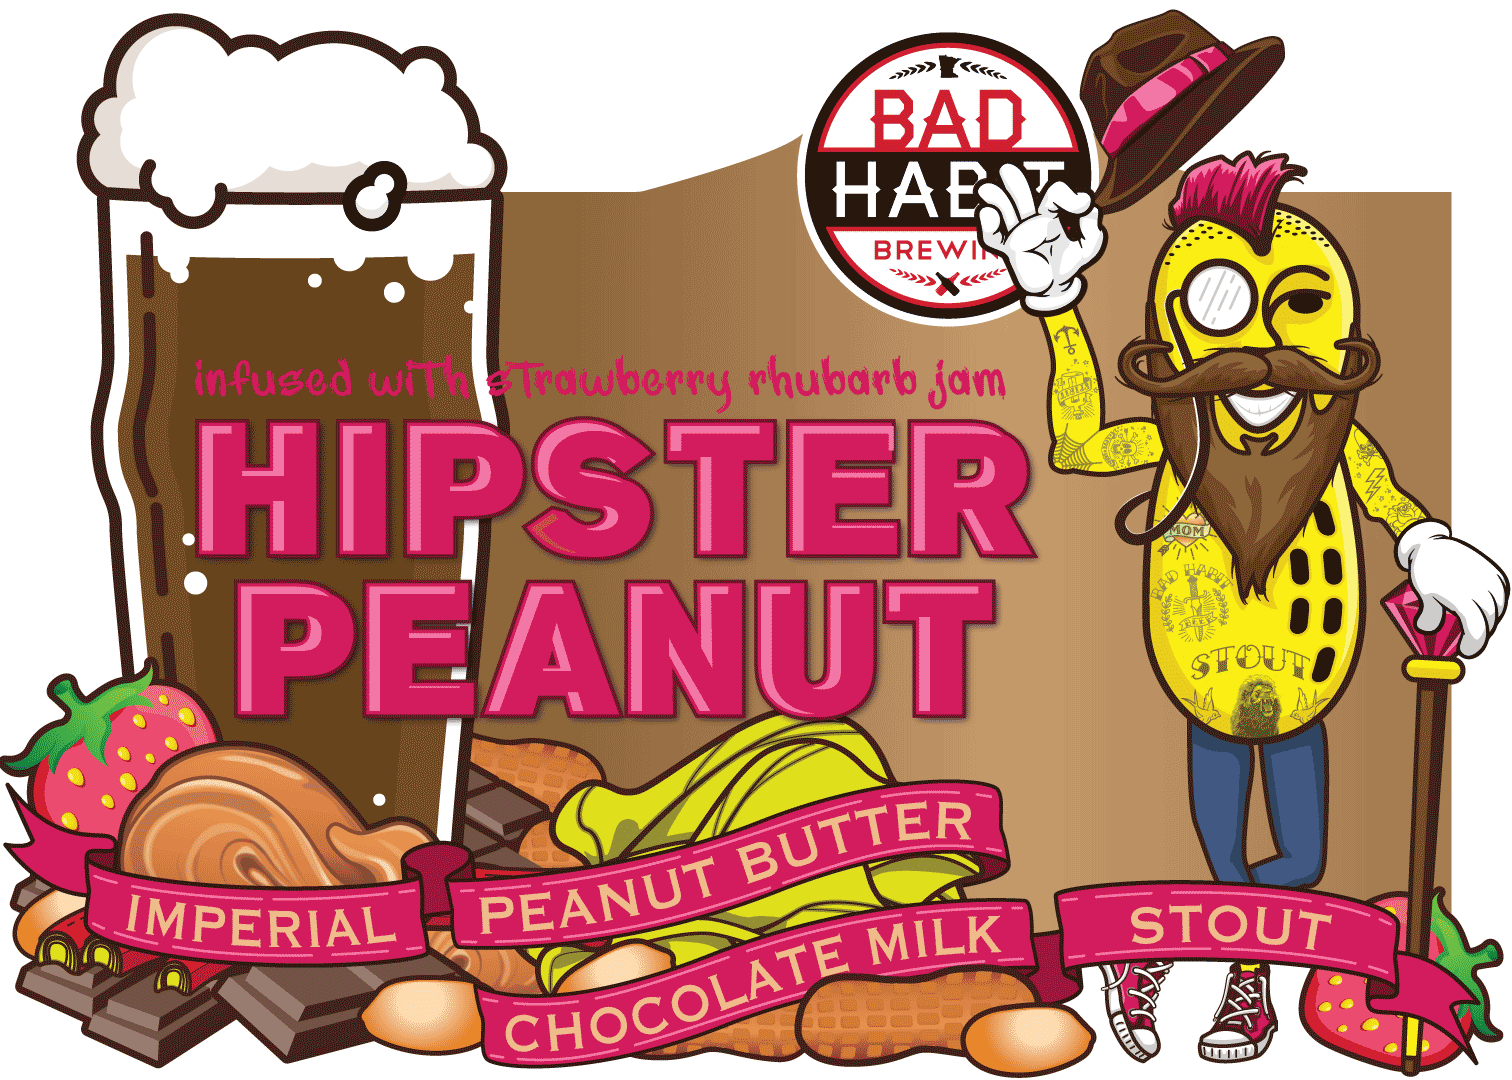 PB & JHIPSTER PEANUT - Imperial Peanut Butter Chocolate Milk Stout Infused with strawberry rhubarb jam | 9% ABVWe start off with our trendiest beer, hipster peanut. It has all the crazy trends the youngsters are into these days. It has peanutbutter, it has lactose, it has chocolate, it is an imperial and it is a stout. Then we infuse it with strawberry and rhubarb jam. It's like eating a PB & J sandwich.